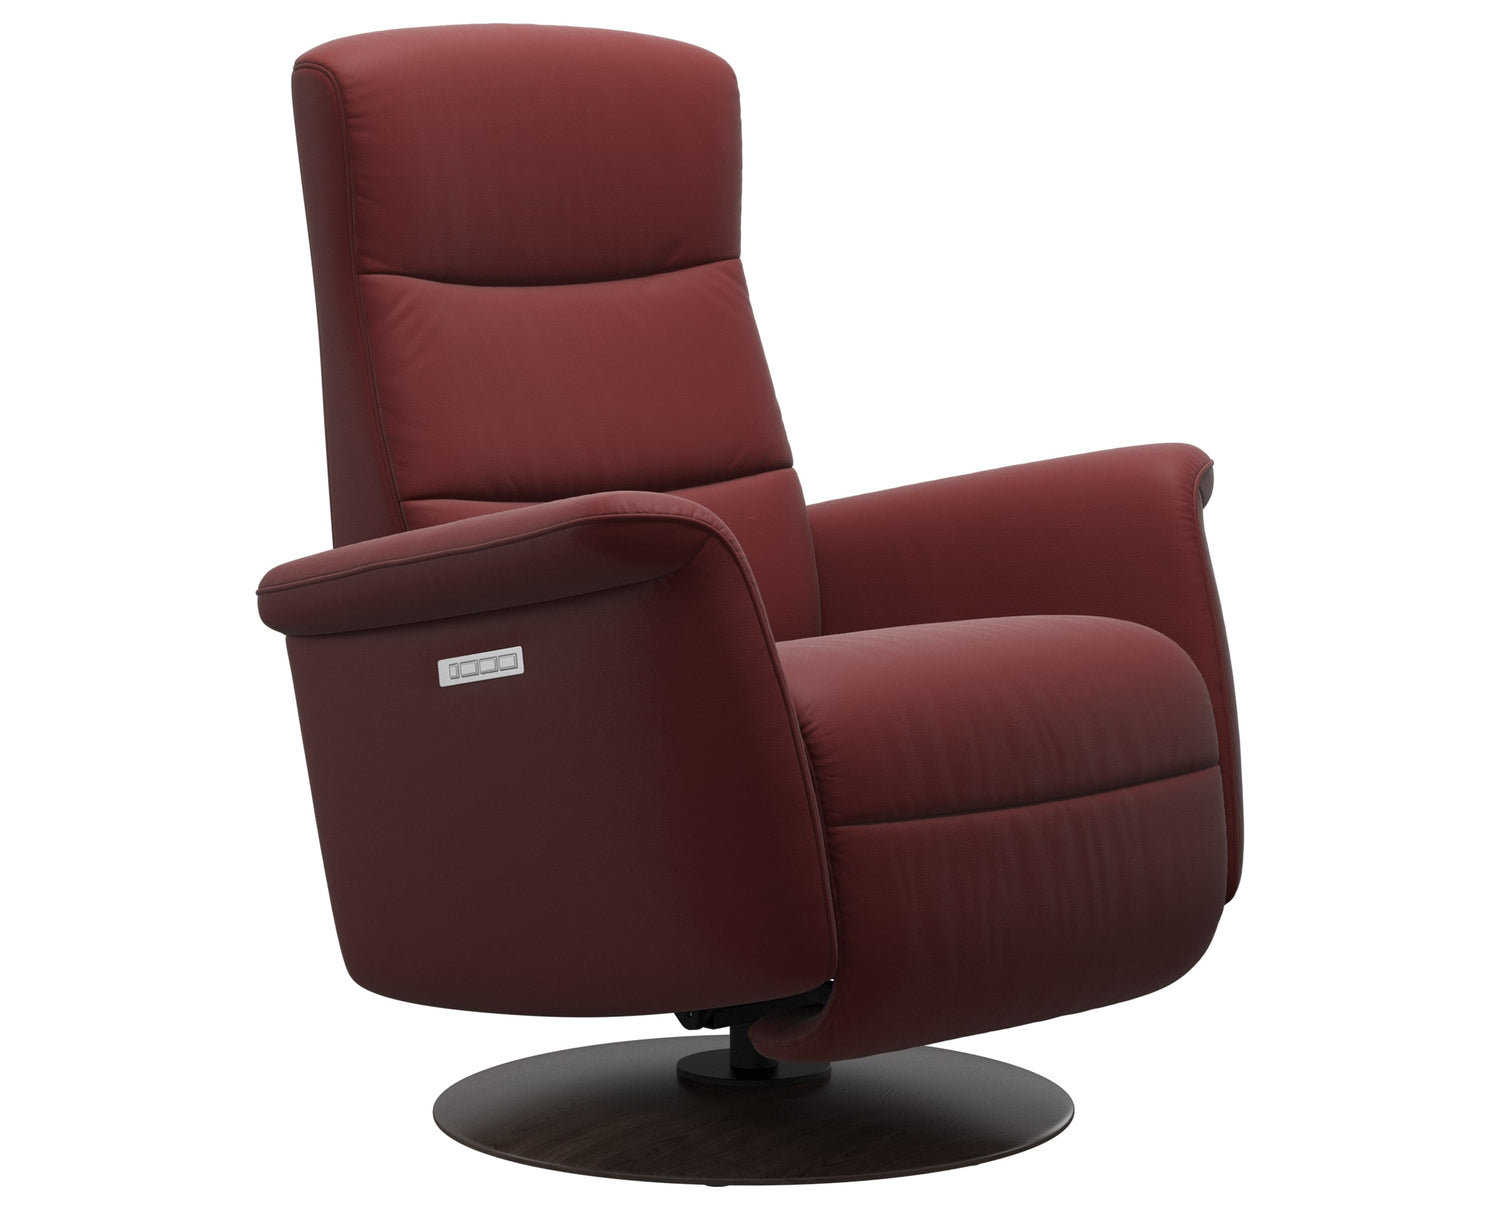 Paloma Leather Cherry S/M/L & Wenge Base | Stressless Mike Recliner | Valley Ridge Furniture